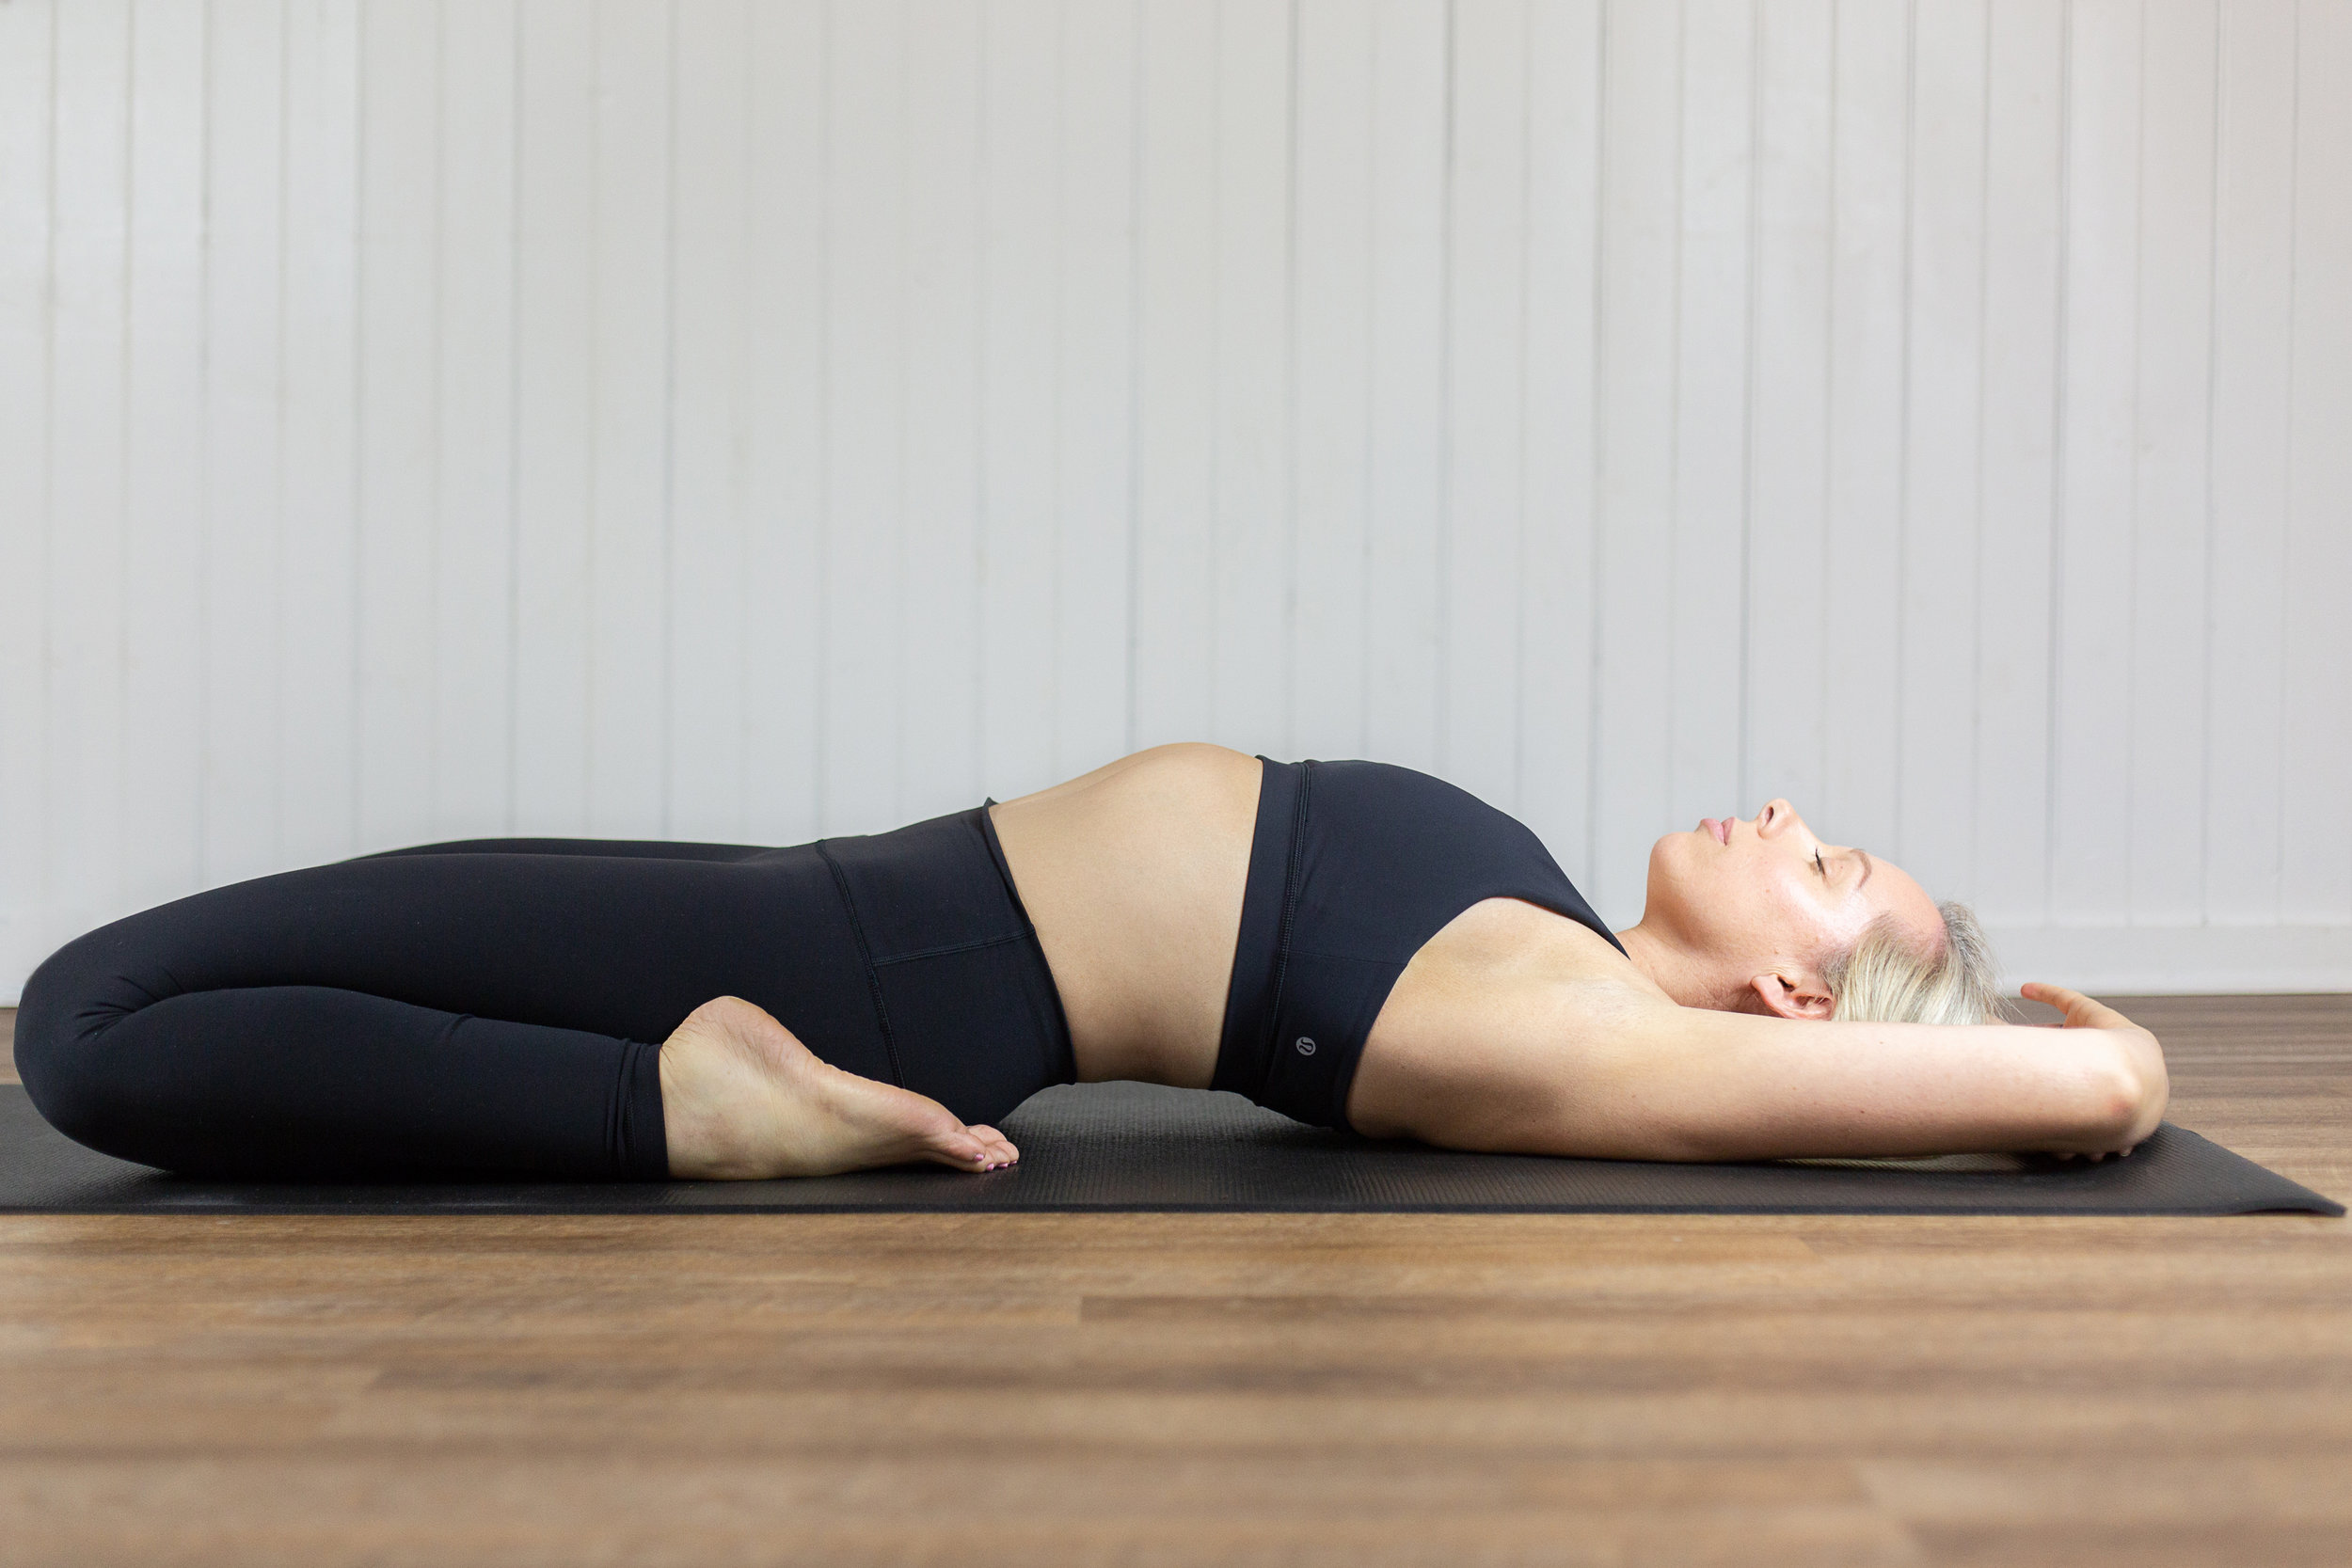 Restore… - A gentle restorative yoga practice designed especially to help balance hormones, restore a state of calm in the nervous system and settle a busy mind. Perfect for IVF support or to help promote natural fertility.